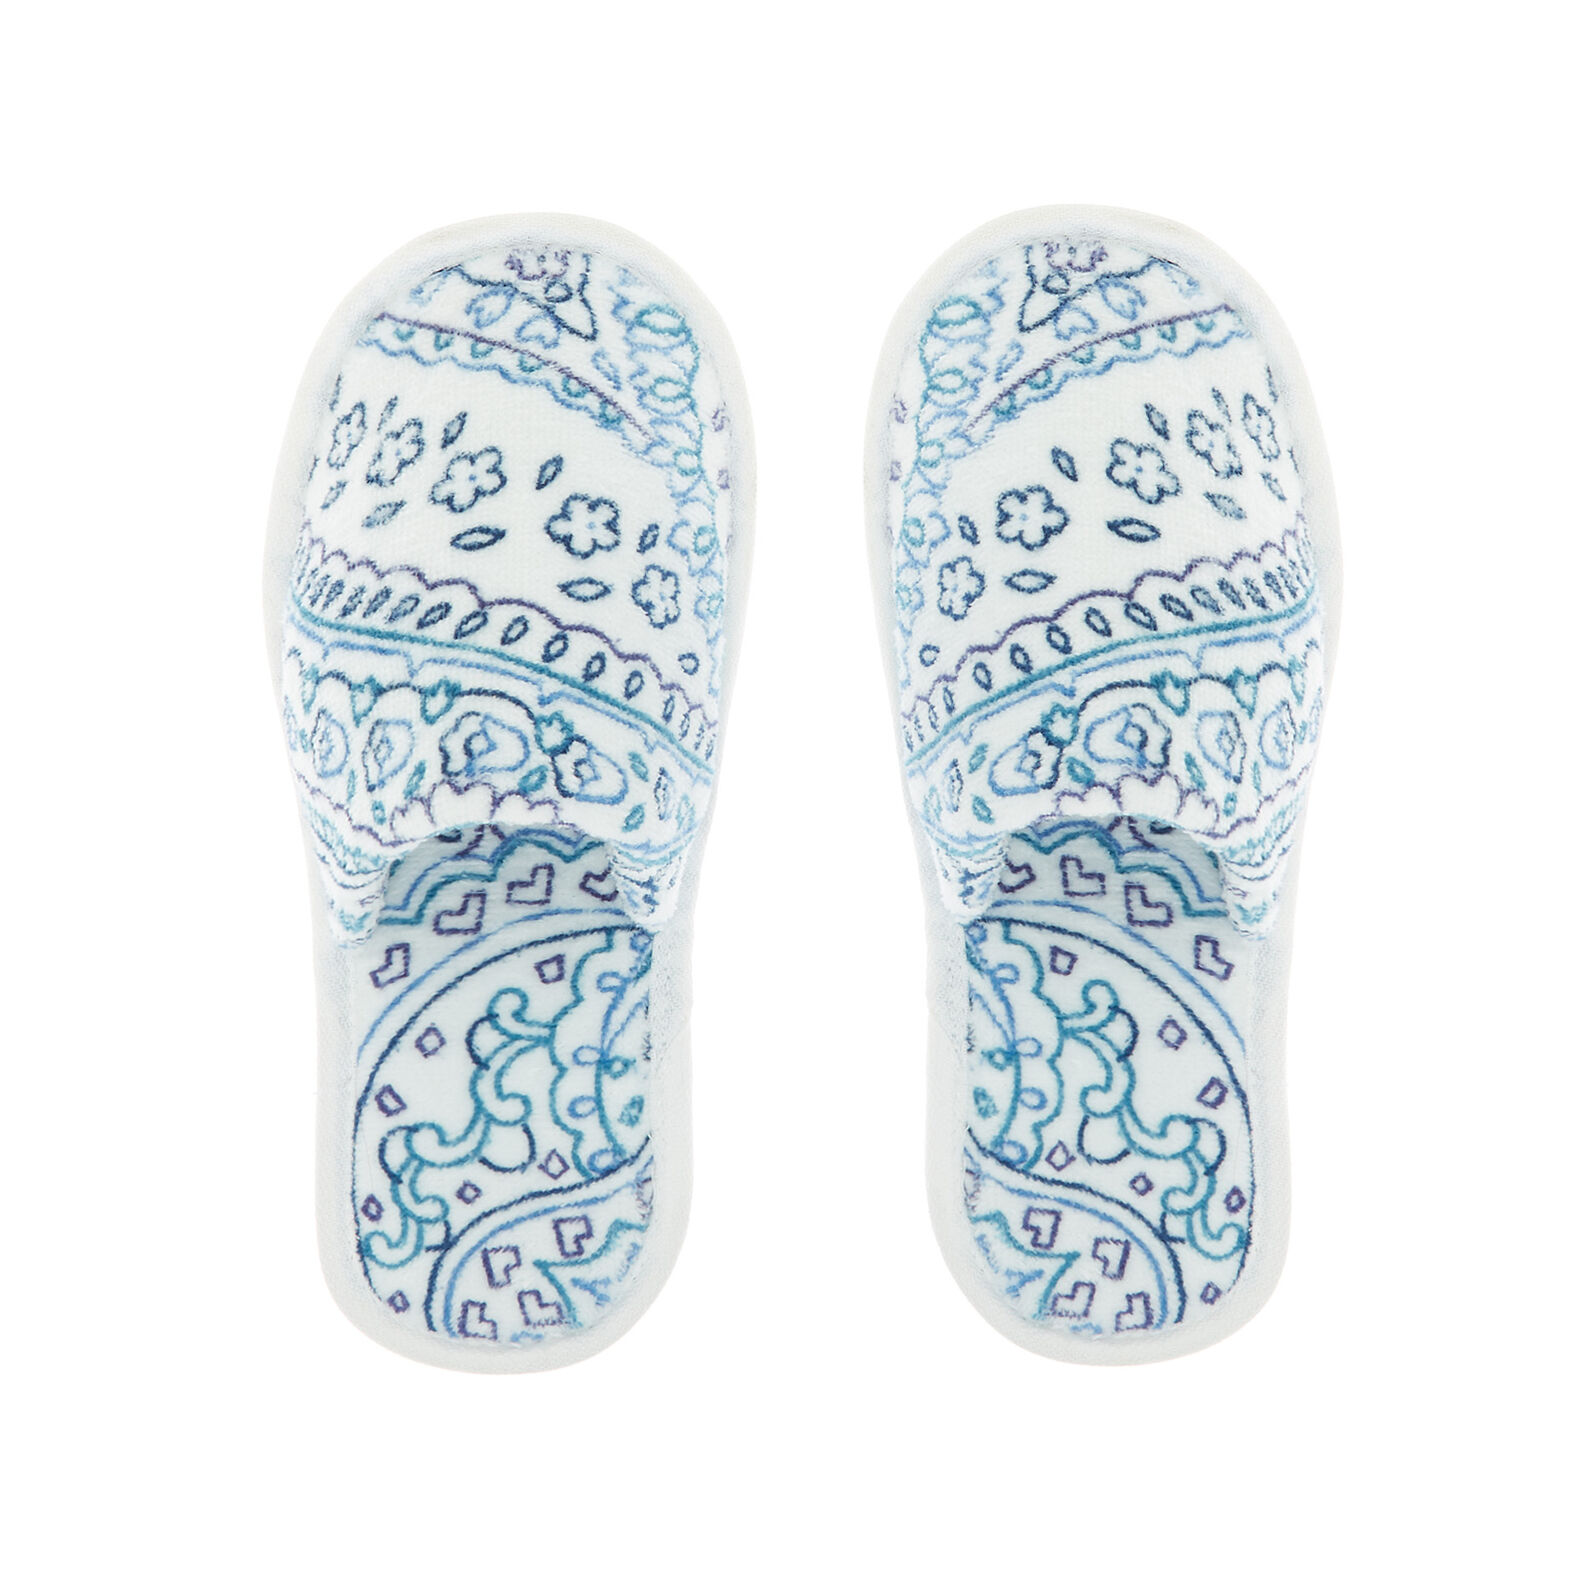 Cotton slippers with paisley print